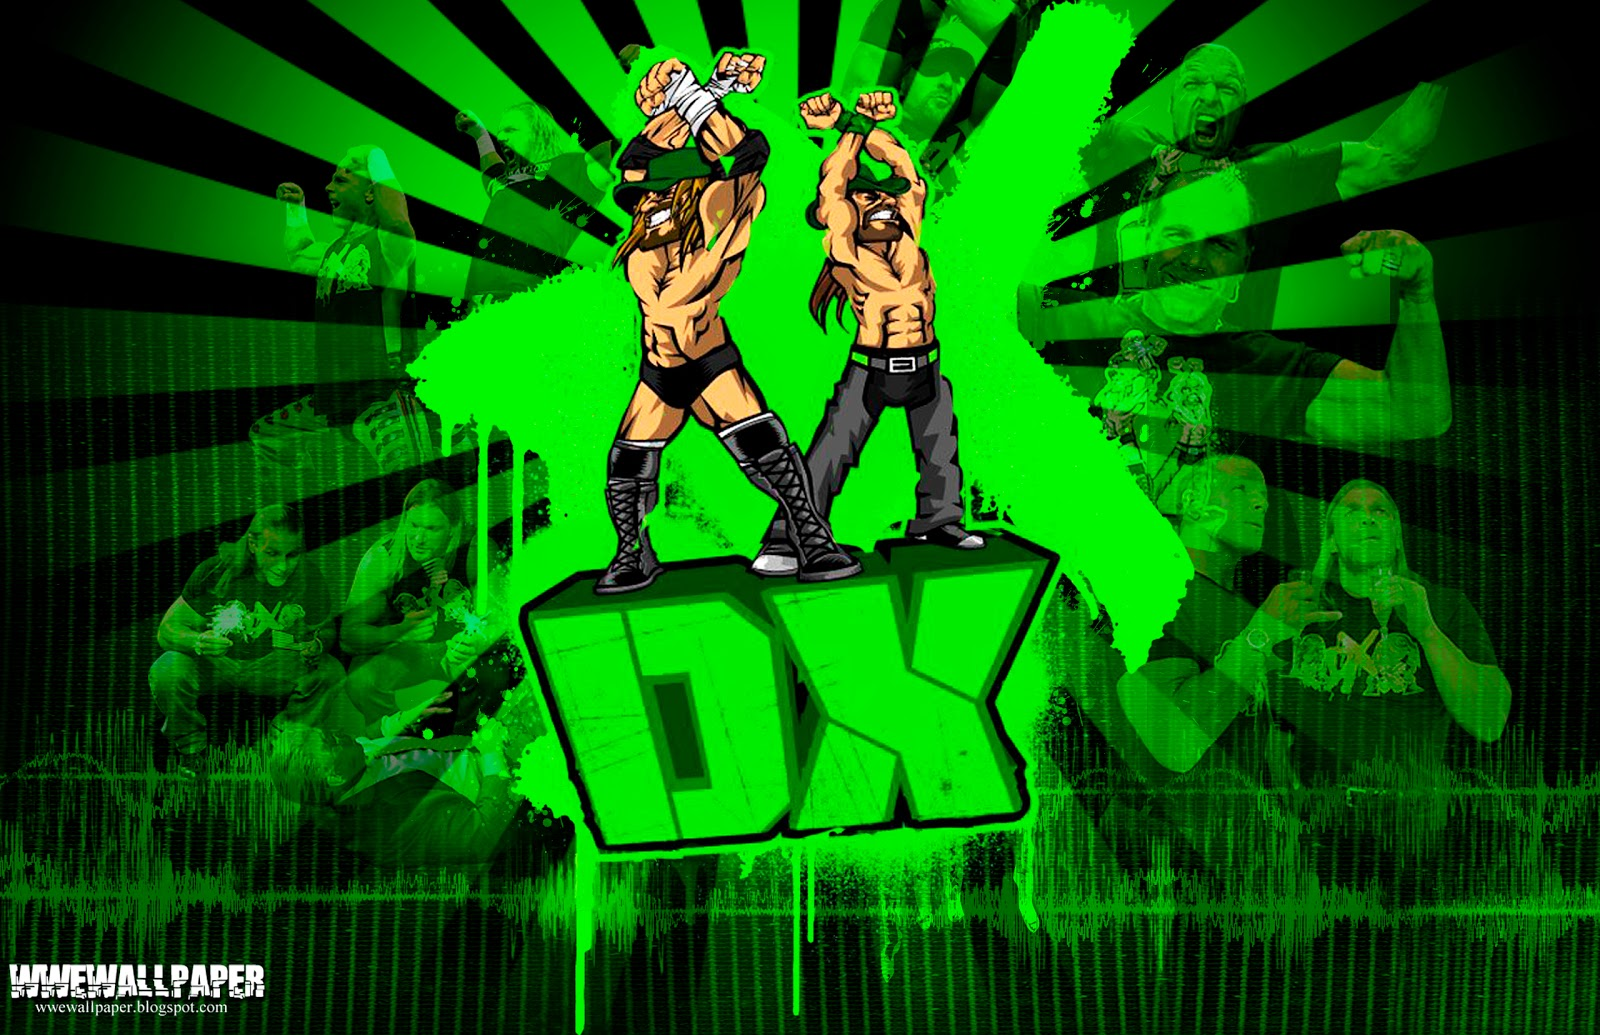 Wallpaper wwe dx wallpaper download - Dx images download ...